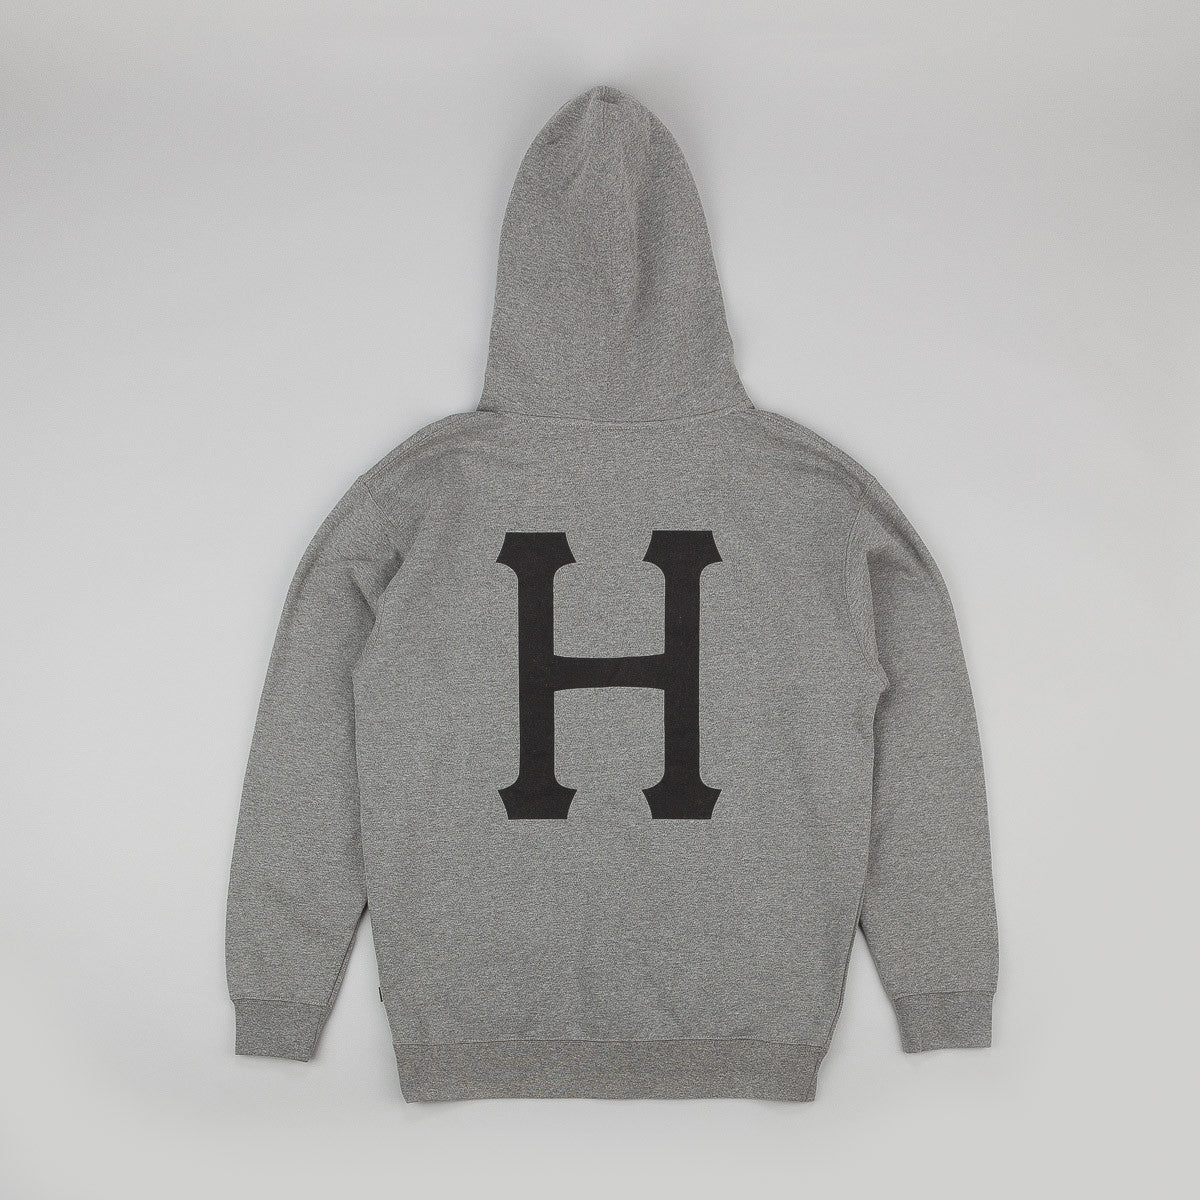 HUF x Thrasher Classic H Pullover Hooded Sweatshirt - Heather Grey